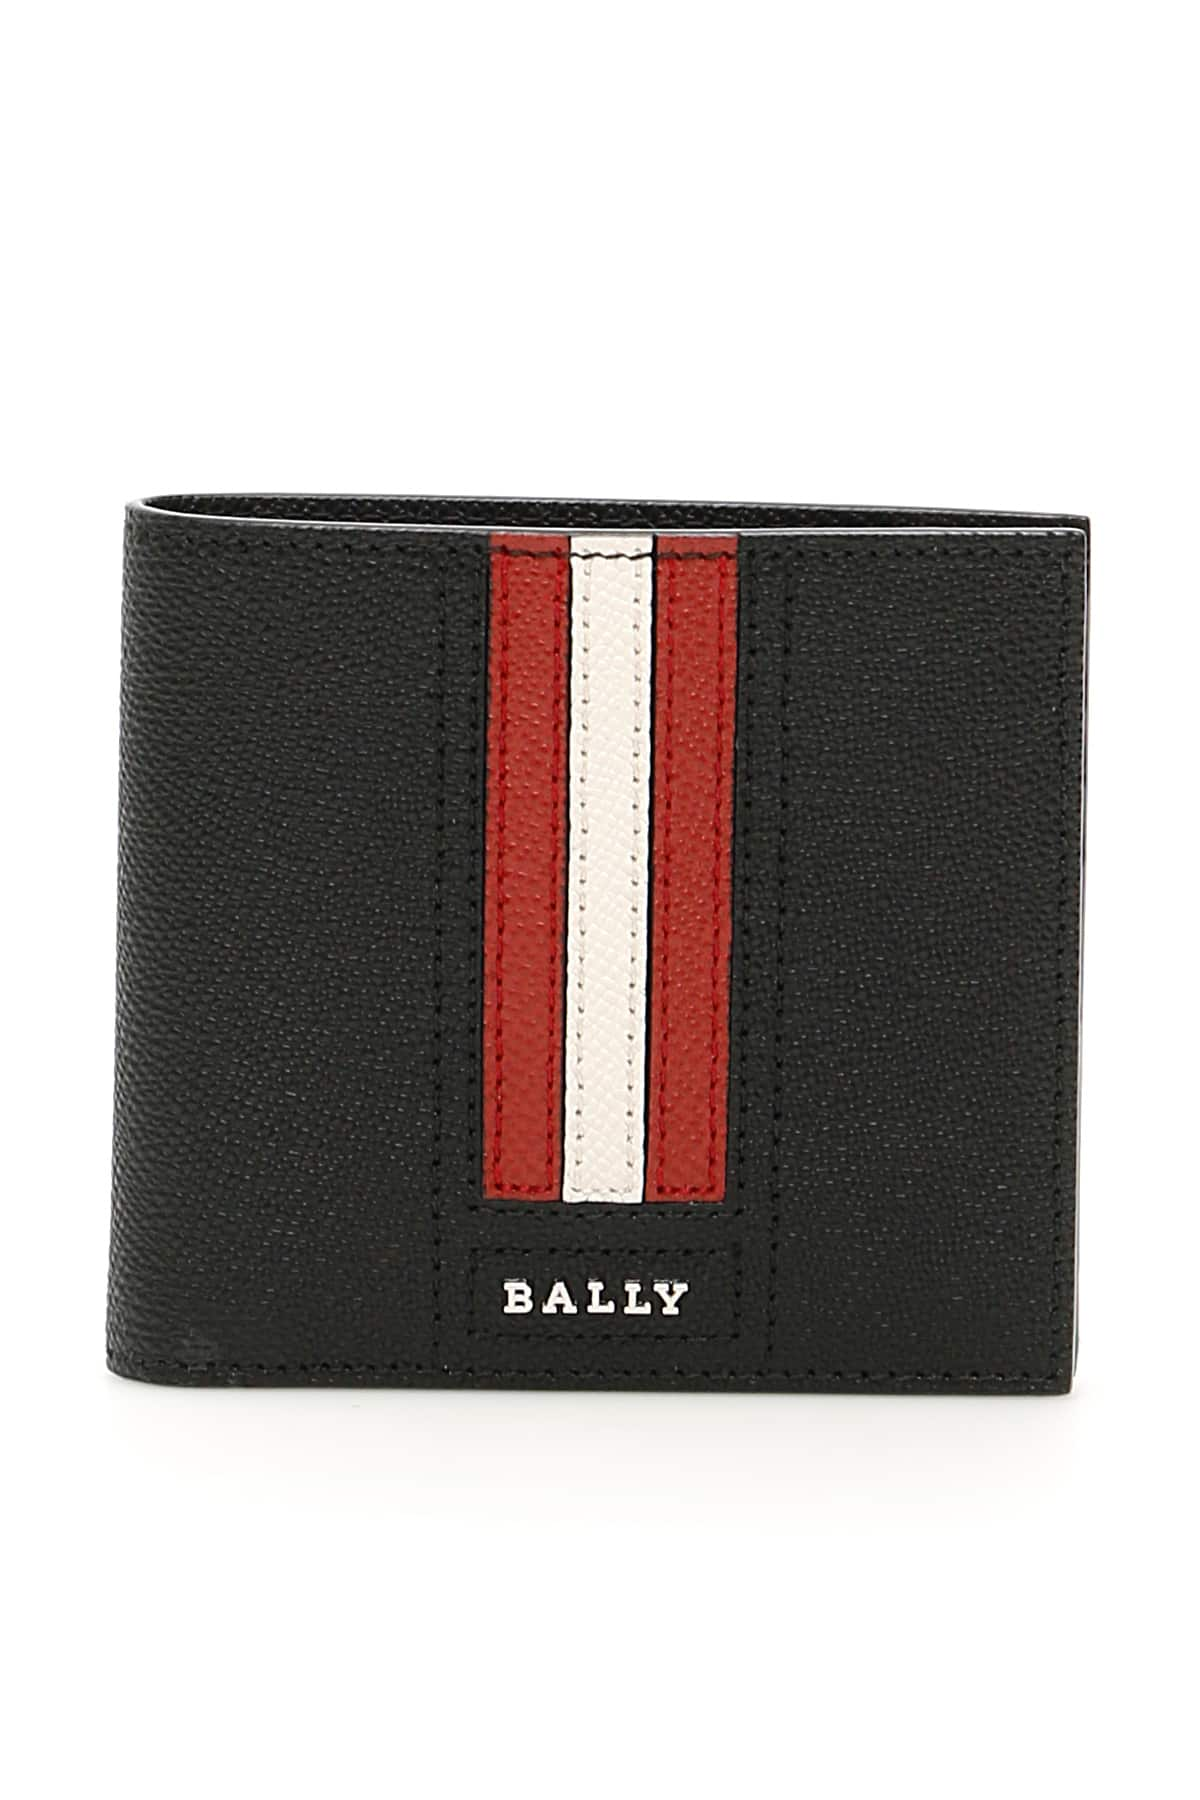 BALLY TRASAI BI-FOLD WALLET OS Black, Red, White Leather